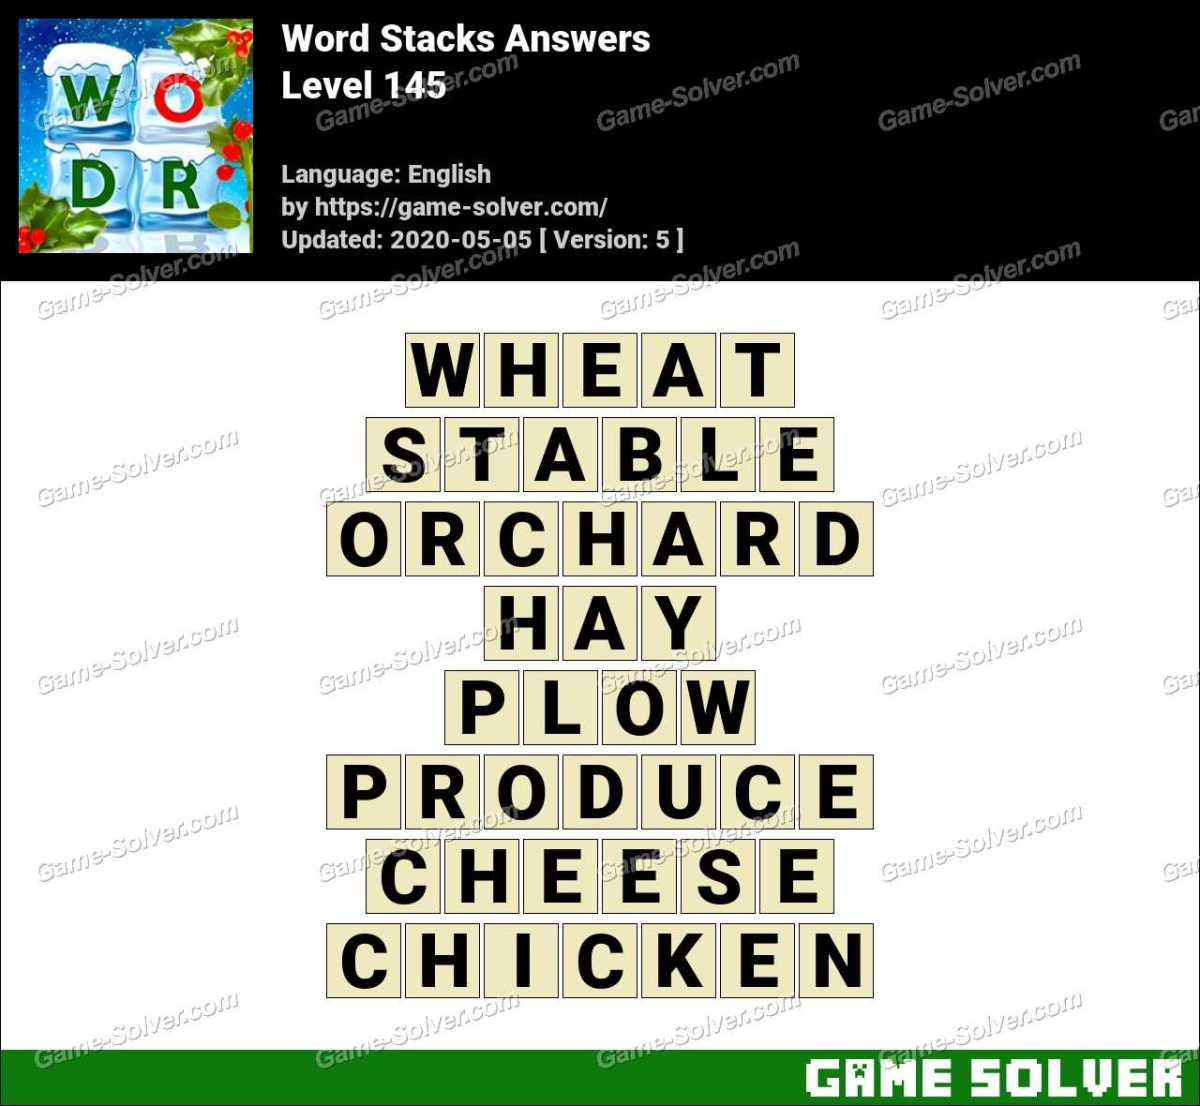 Word Stacks Level 145 Answers Game Solver